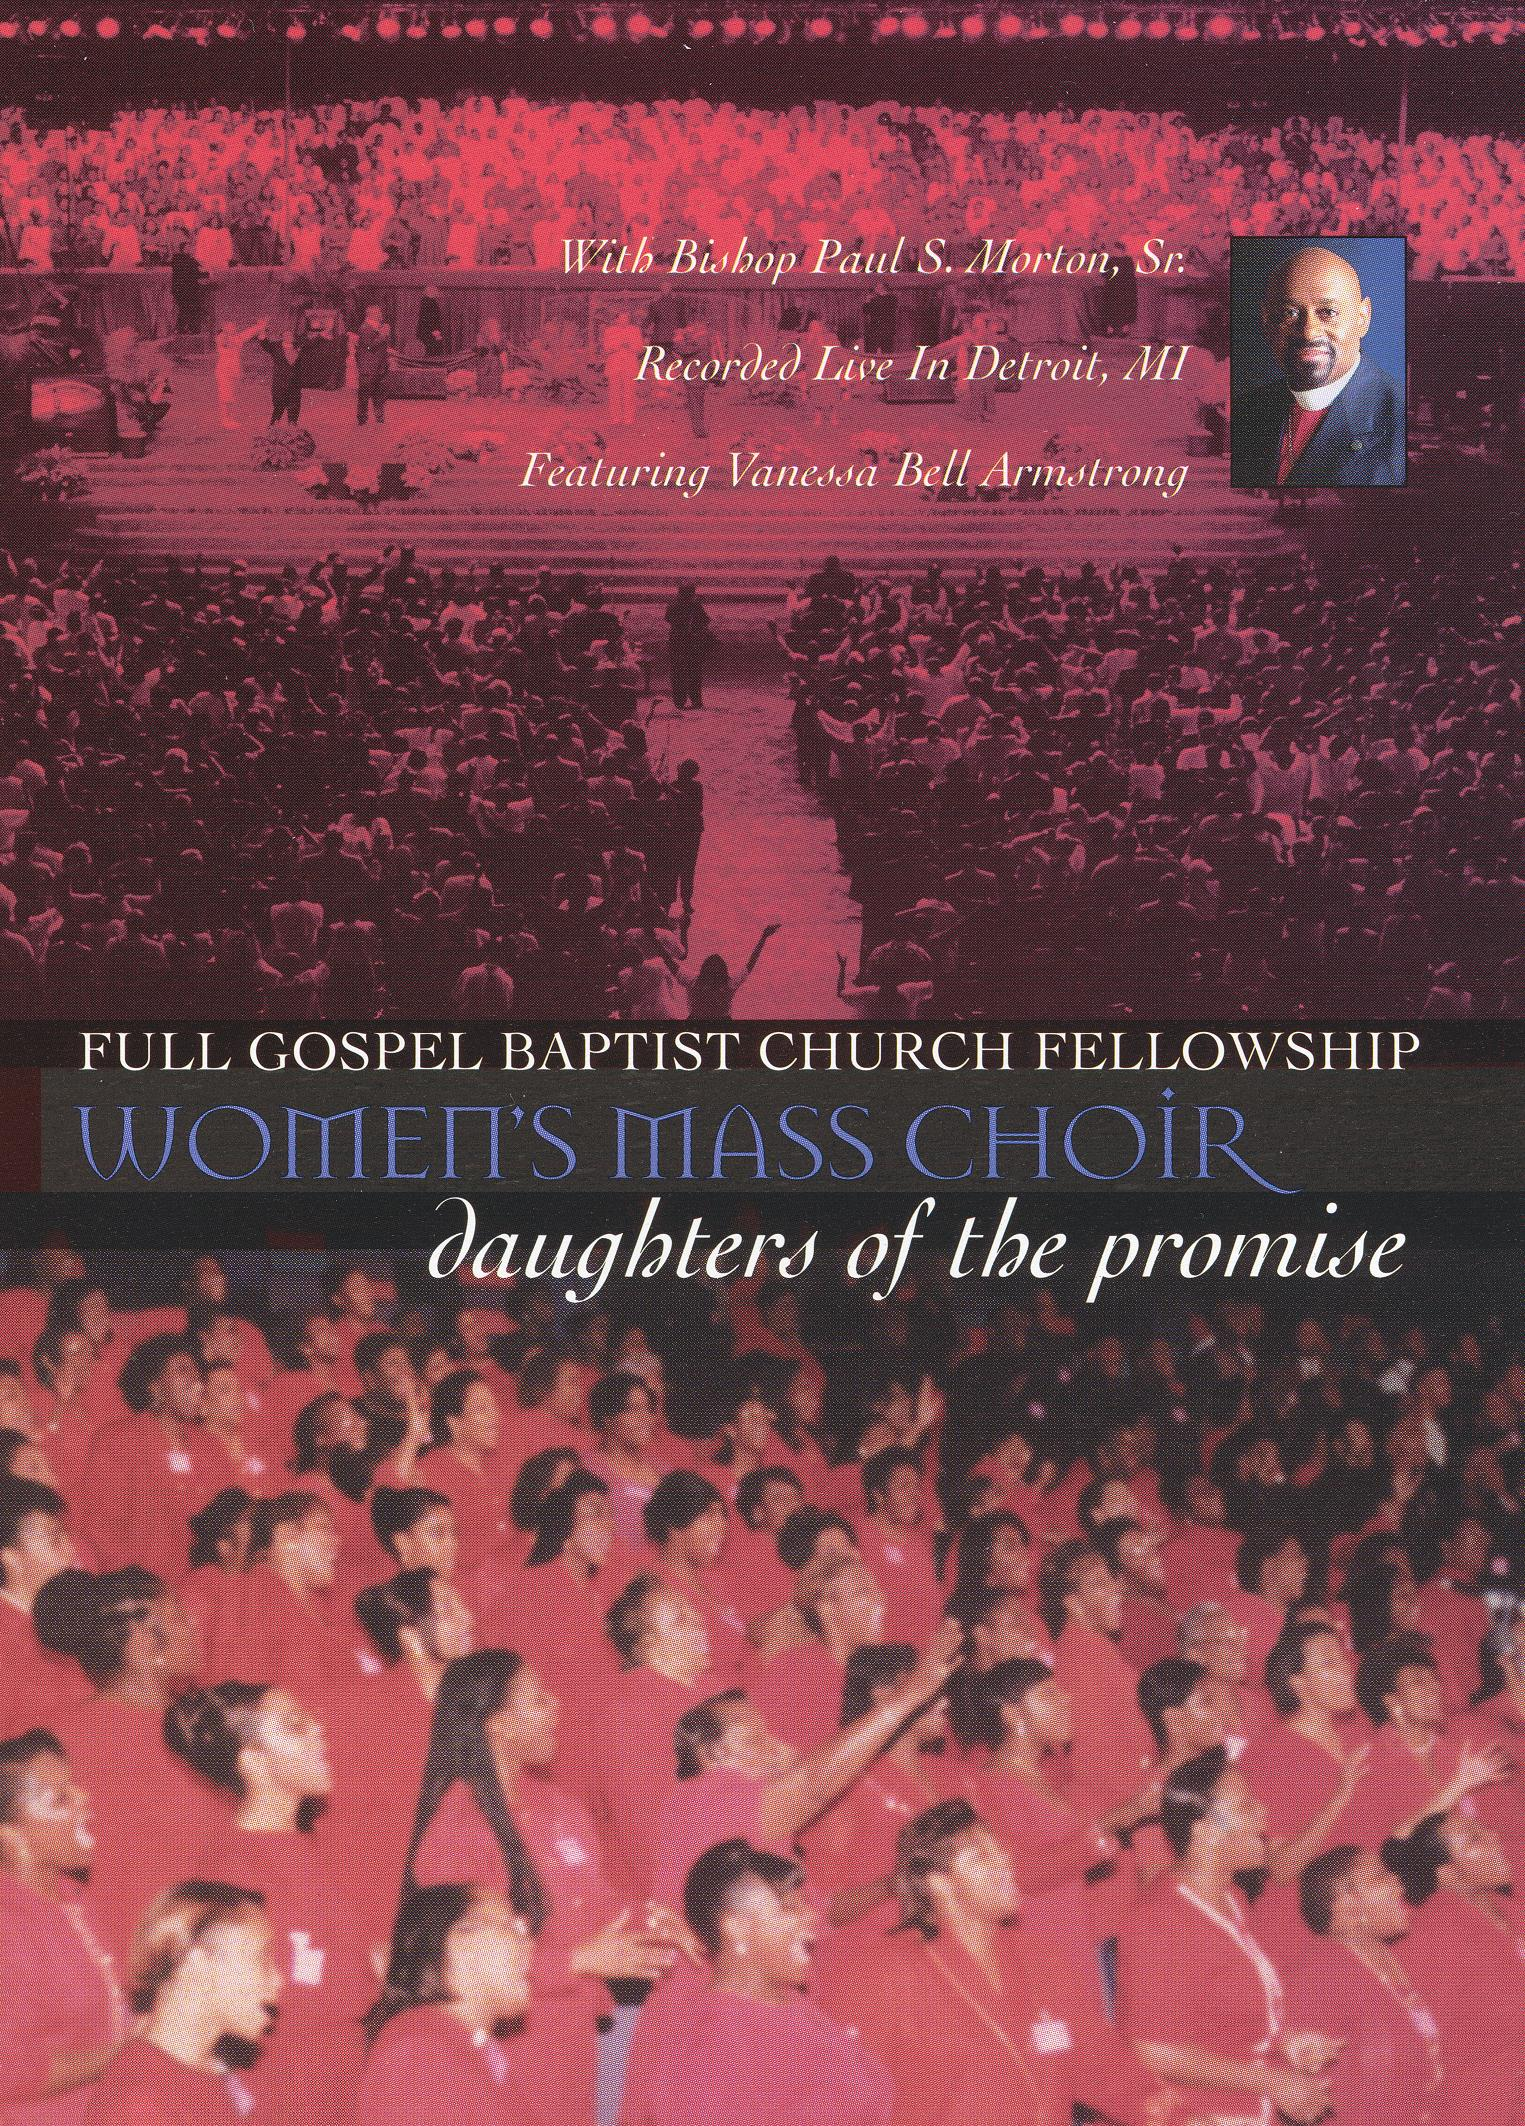 Full Gospel Baptist Fellowship Mass Choir: Women's Mass Choir - Daughters of the Promise